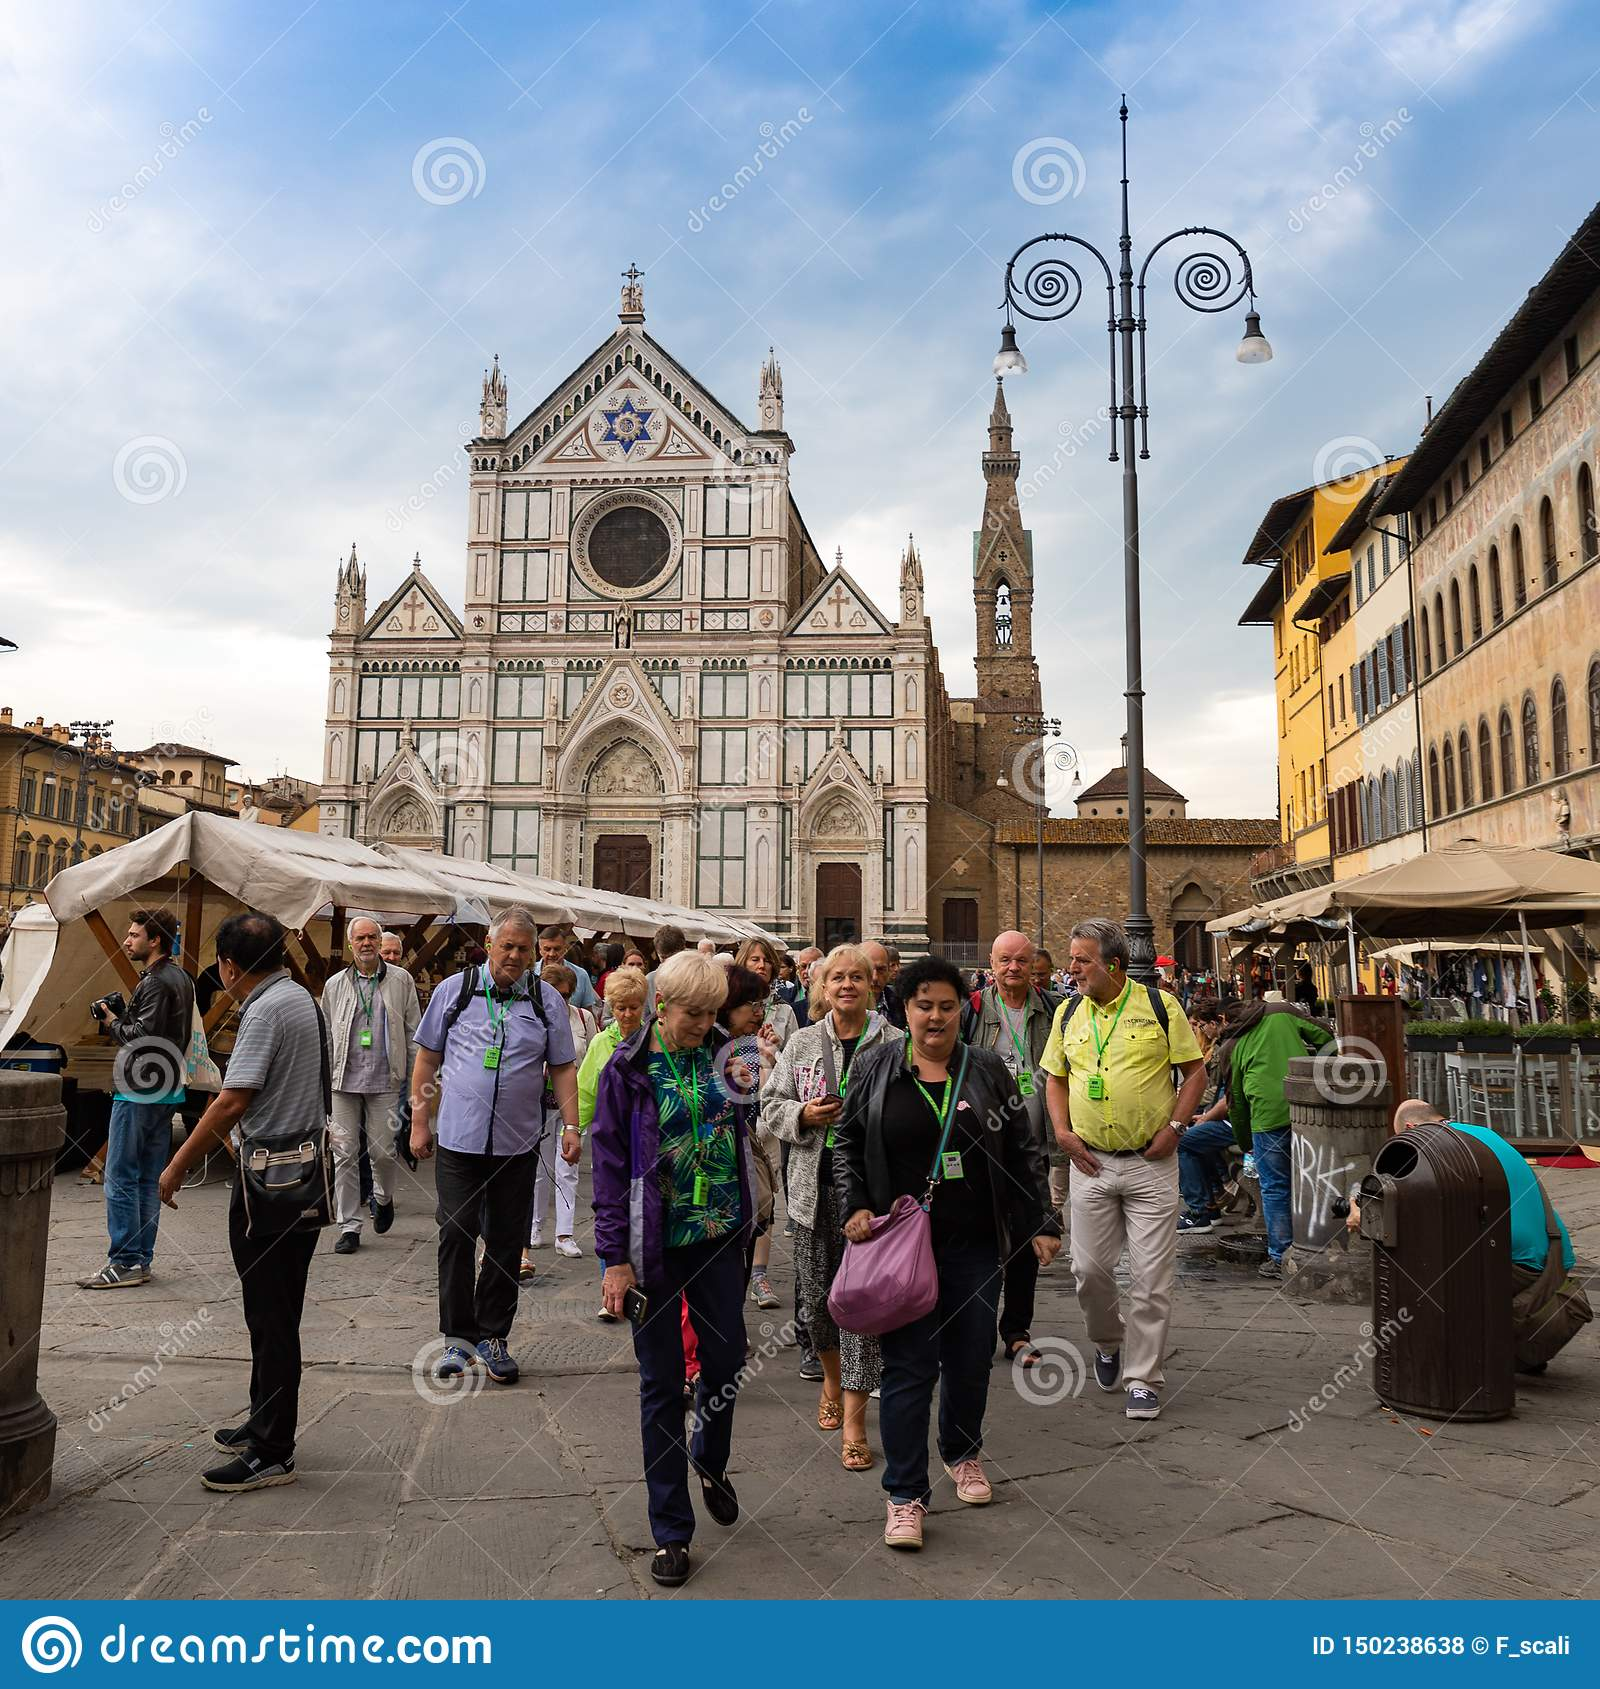 Tourists on Piazza di Santa Croce in Firenze